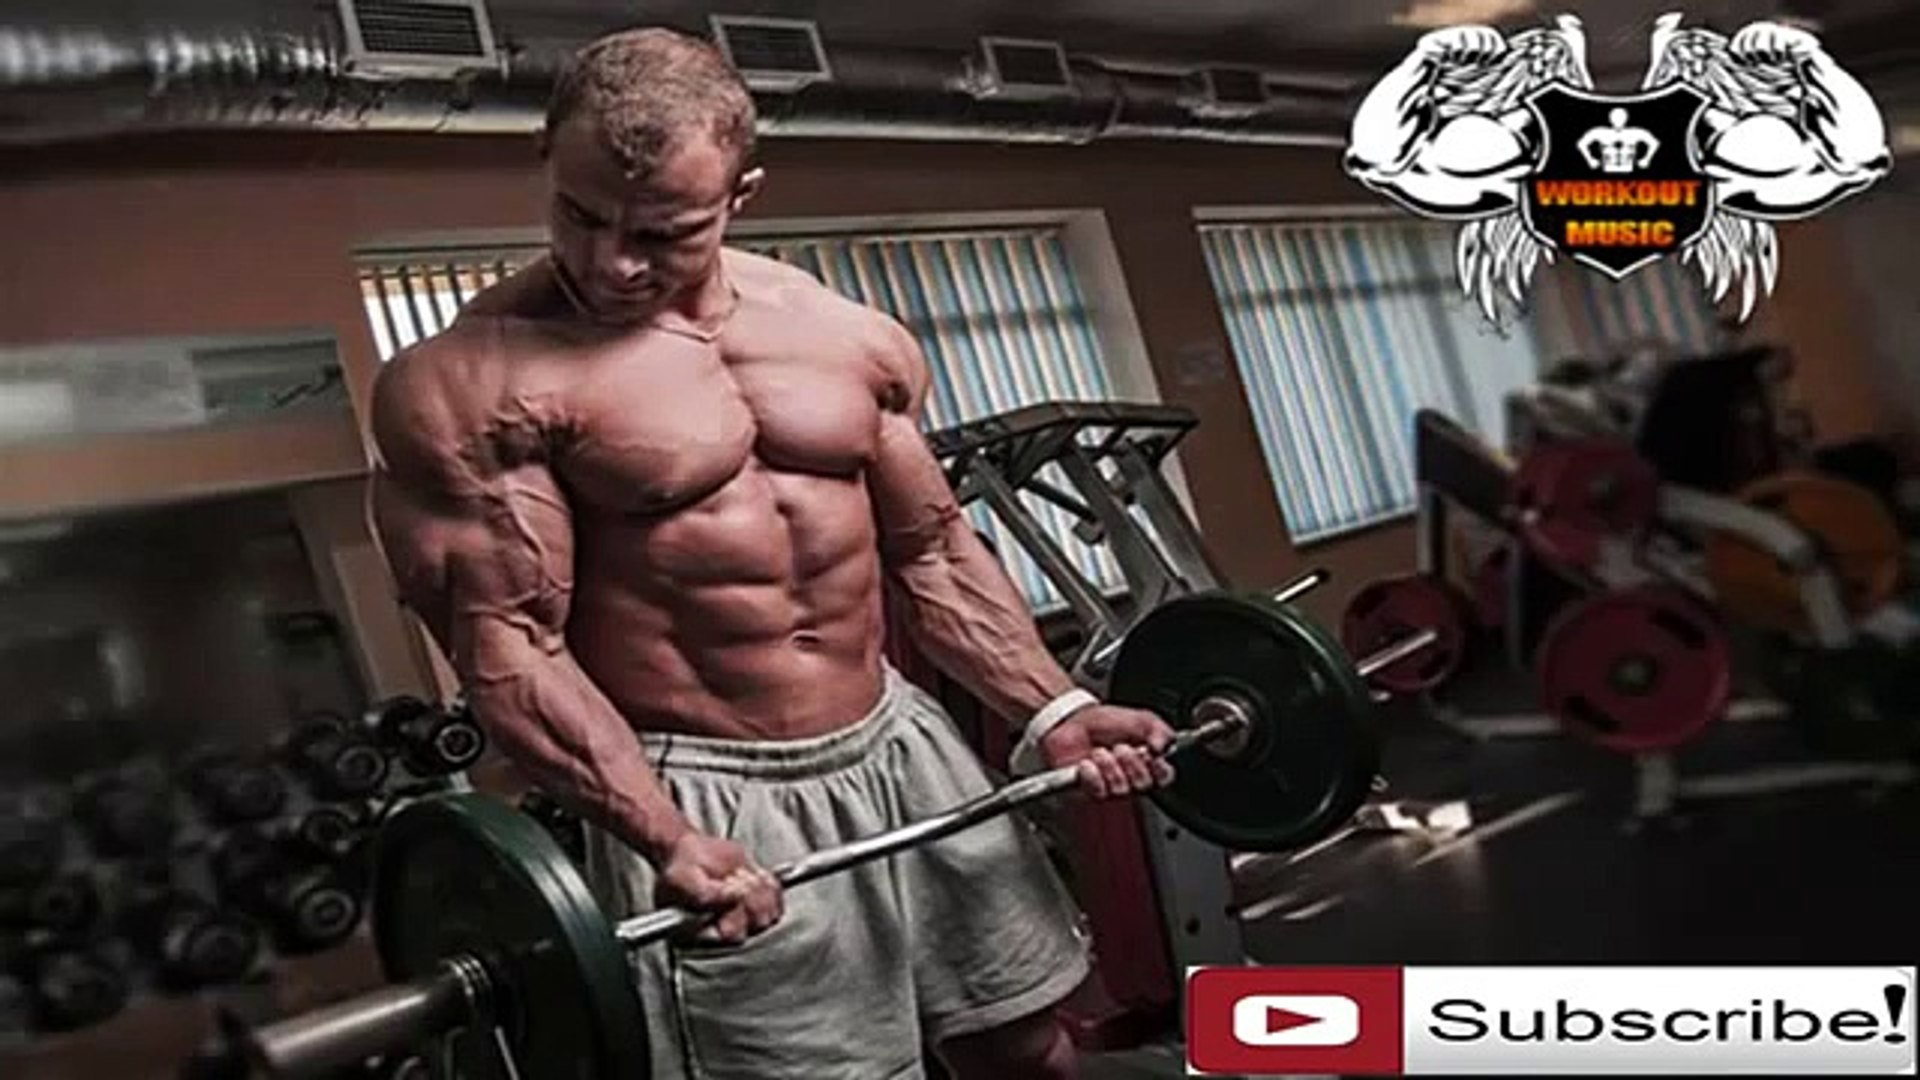 Workout Music, Gym, Gym Music, Gym Motivation Music, Best Bodybuilding, Training